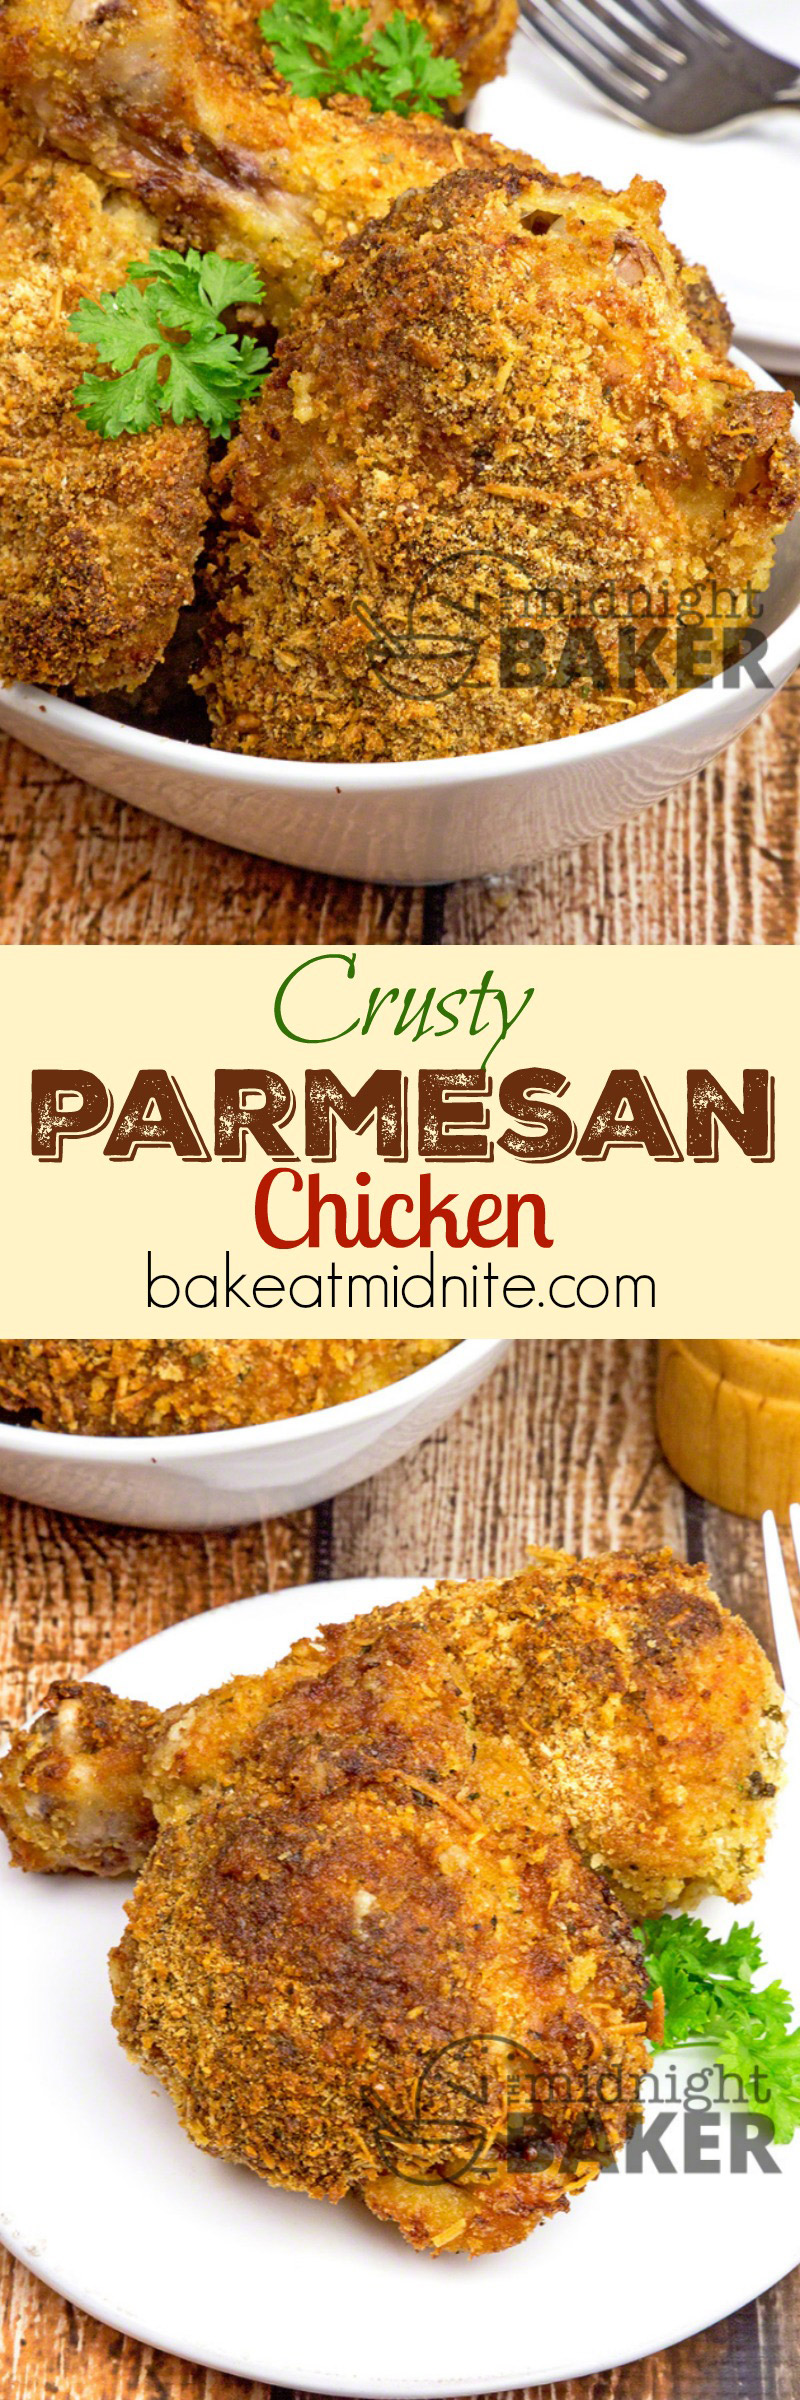 Juicy baked chicken with a crusty parmesan crumb coating.